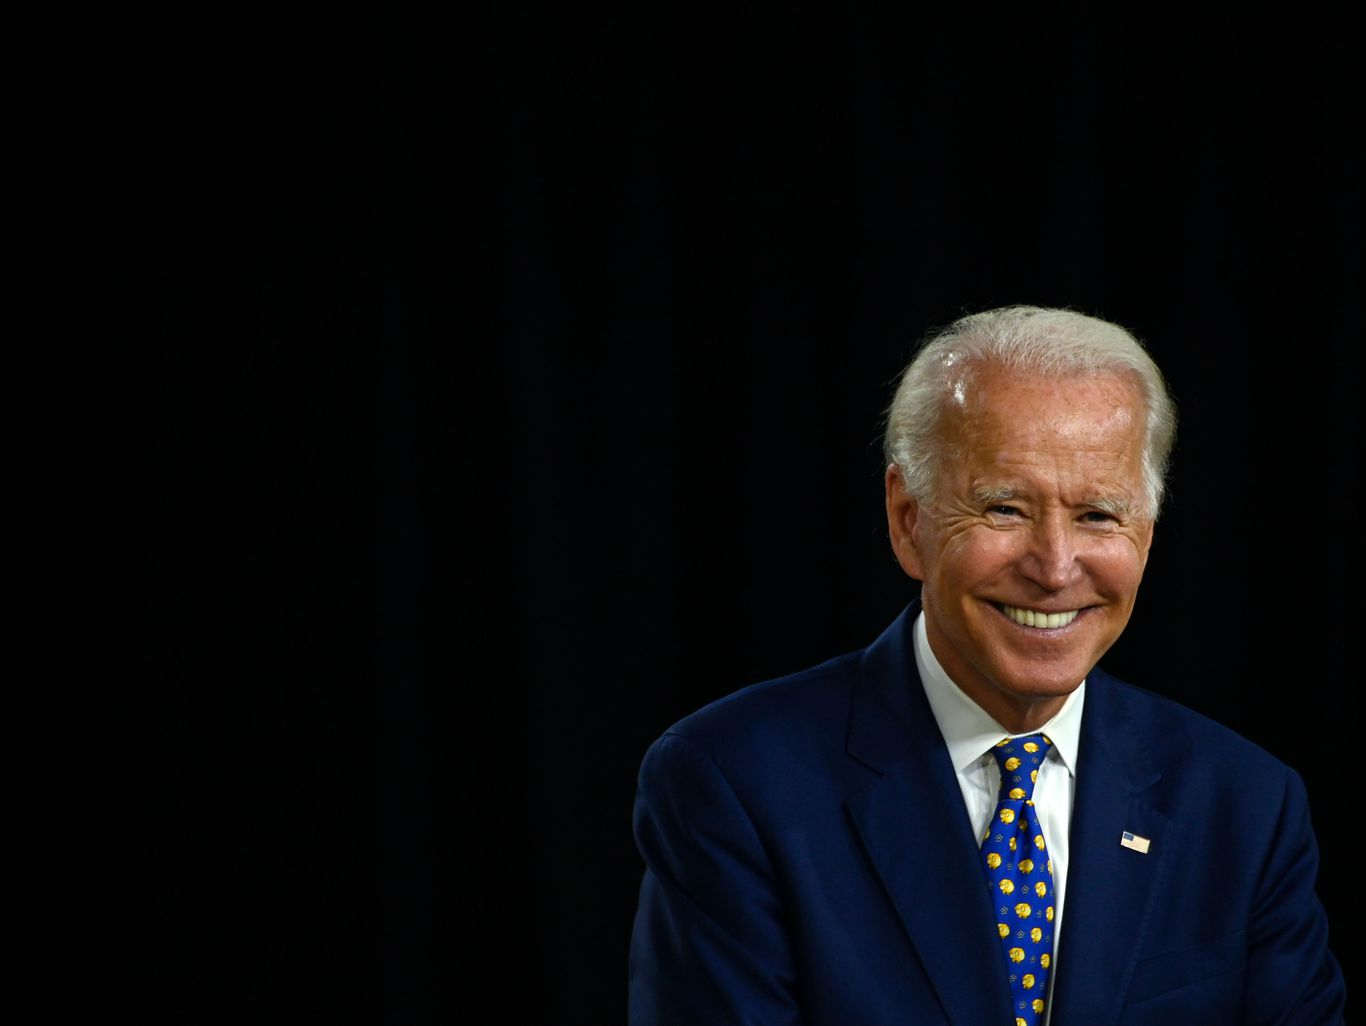 Biden campaign, DNC jointly raised $140 million in July thumbnail